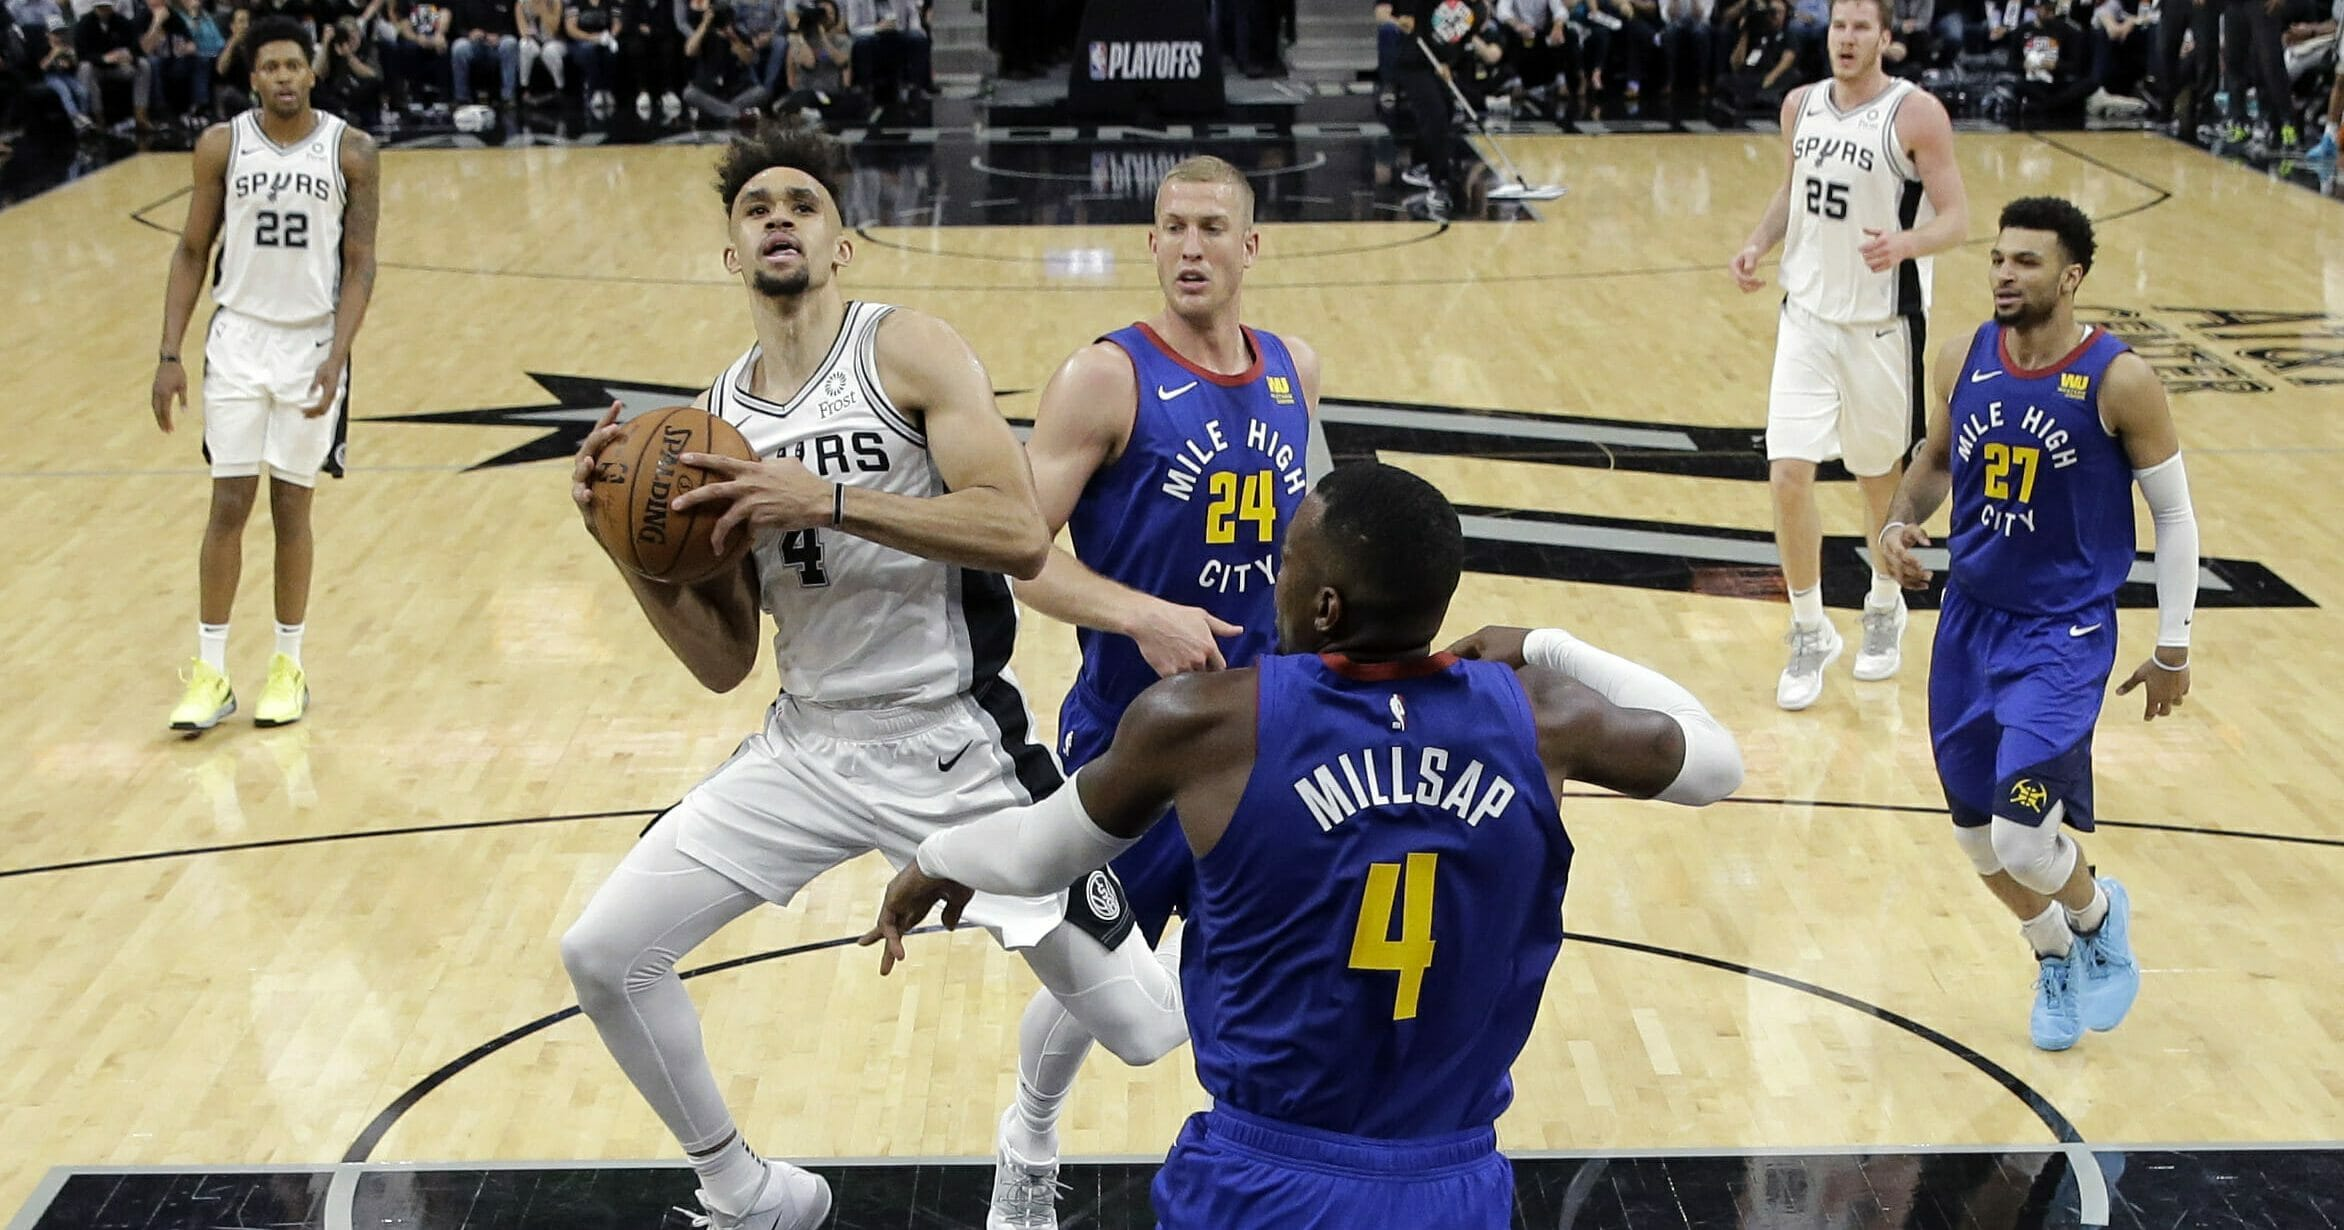 San Antonio Spurs guard Derrick White (4) drives to the basket against Denver Nuggets forward Paul Millsap (4) during Game 3 of their playoff series on April 18, 2019.